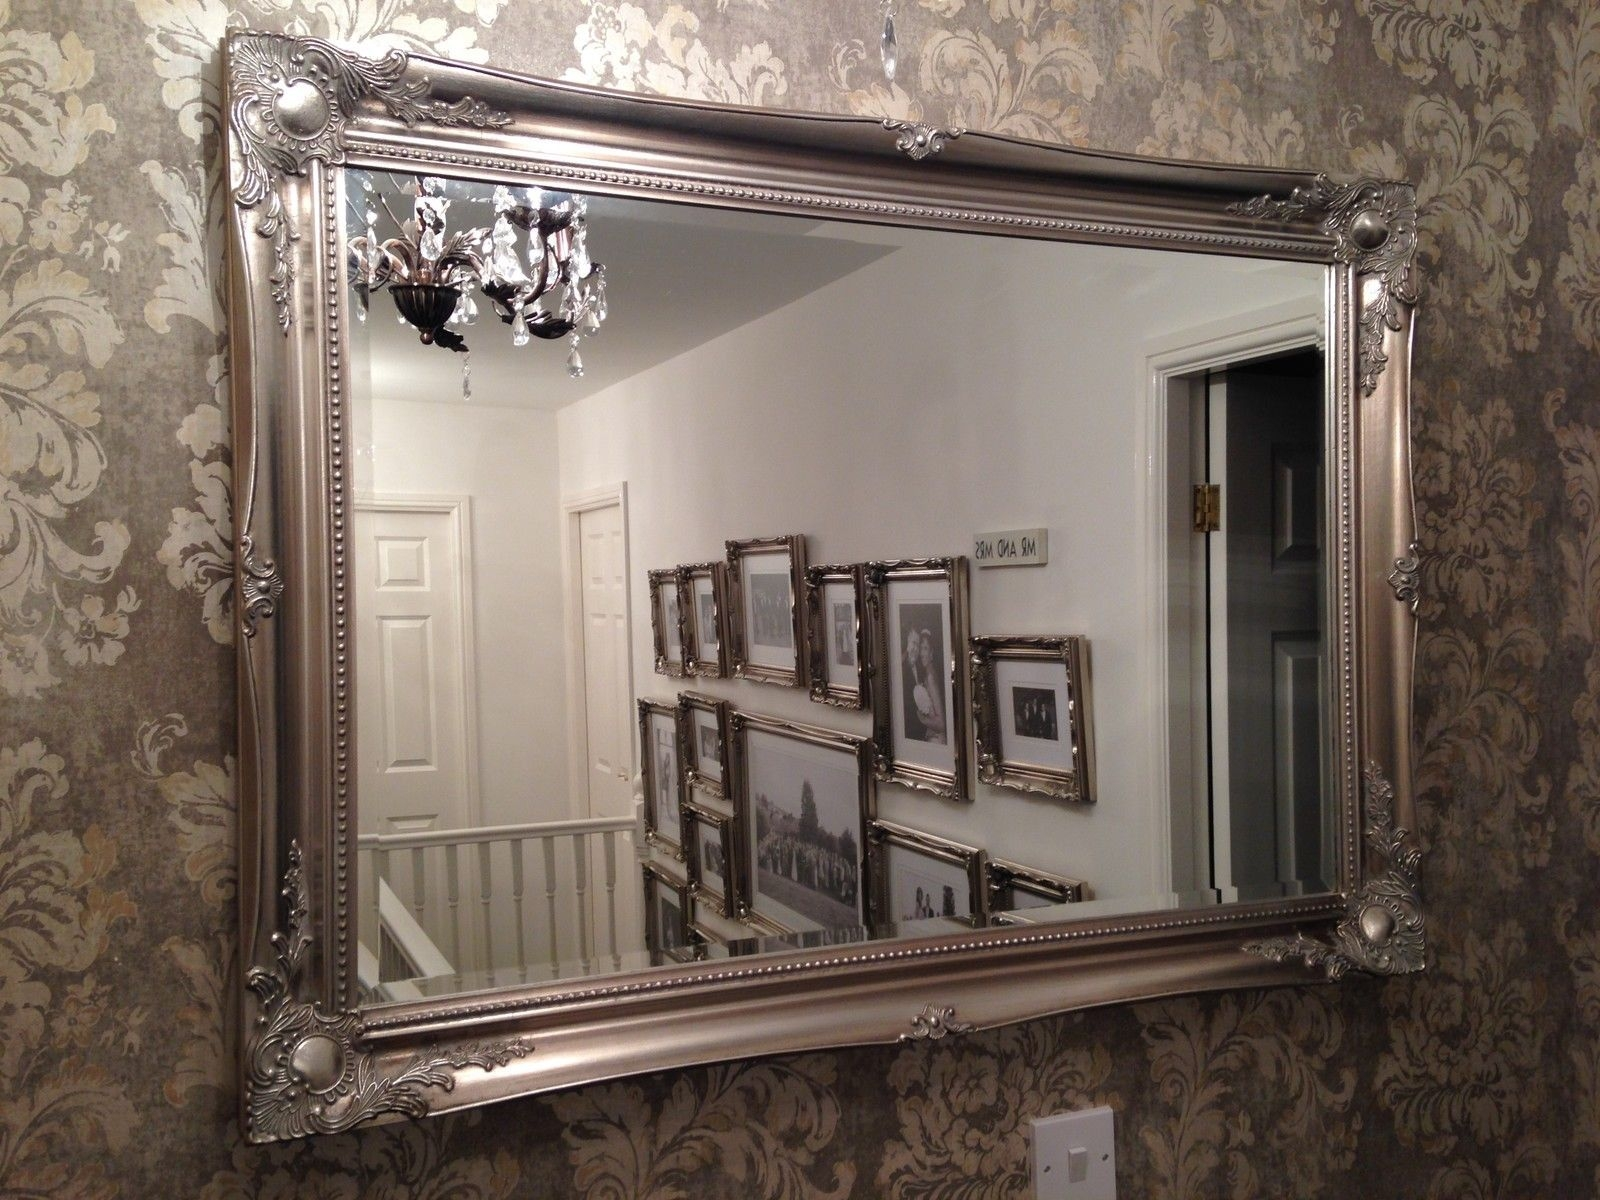 Silver Mirrors With Large Ornate Mirrors For Sale (Image 14 of 15)